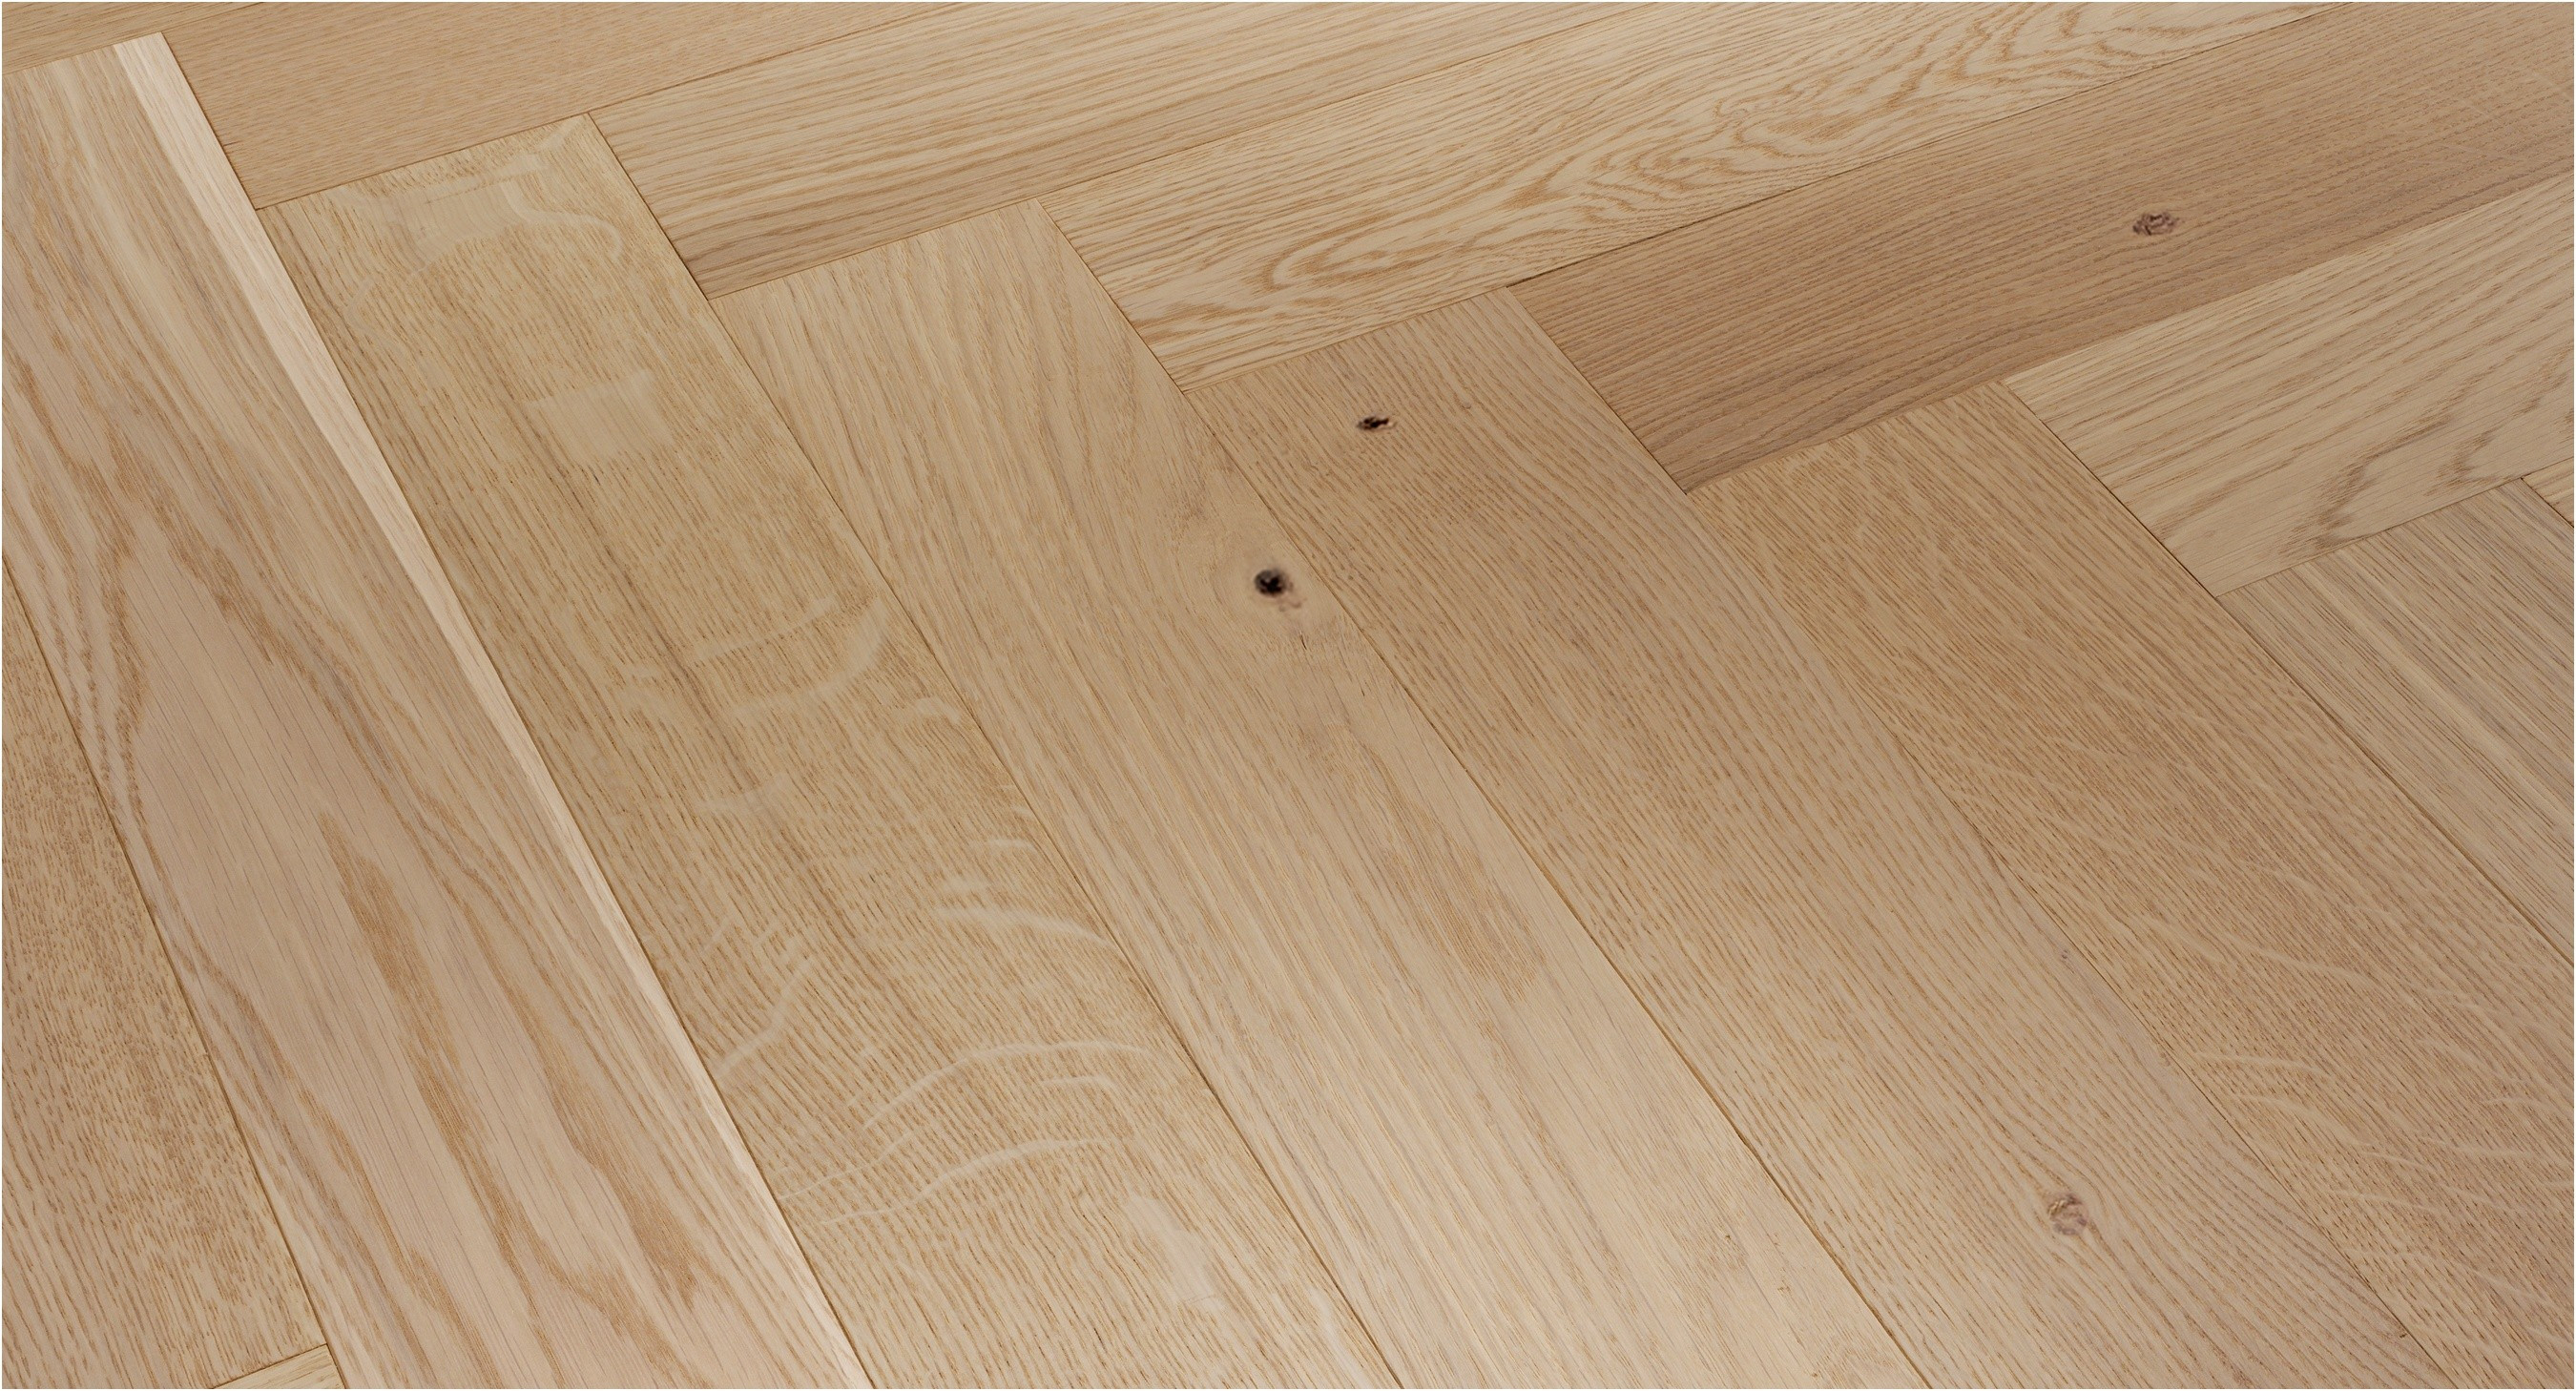 Hickory Hardwood Floors Pictures Of 19 Awesome Hardwood Flooring for Sale Photograph Dizpos Com within Hardwood Flooring for Sale Awesome Flooring Sale Near Me Stock 0d Grace Place Barnegat Nj Photos